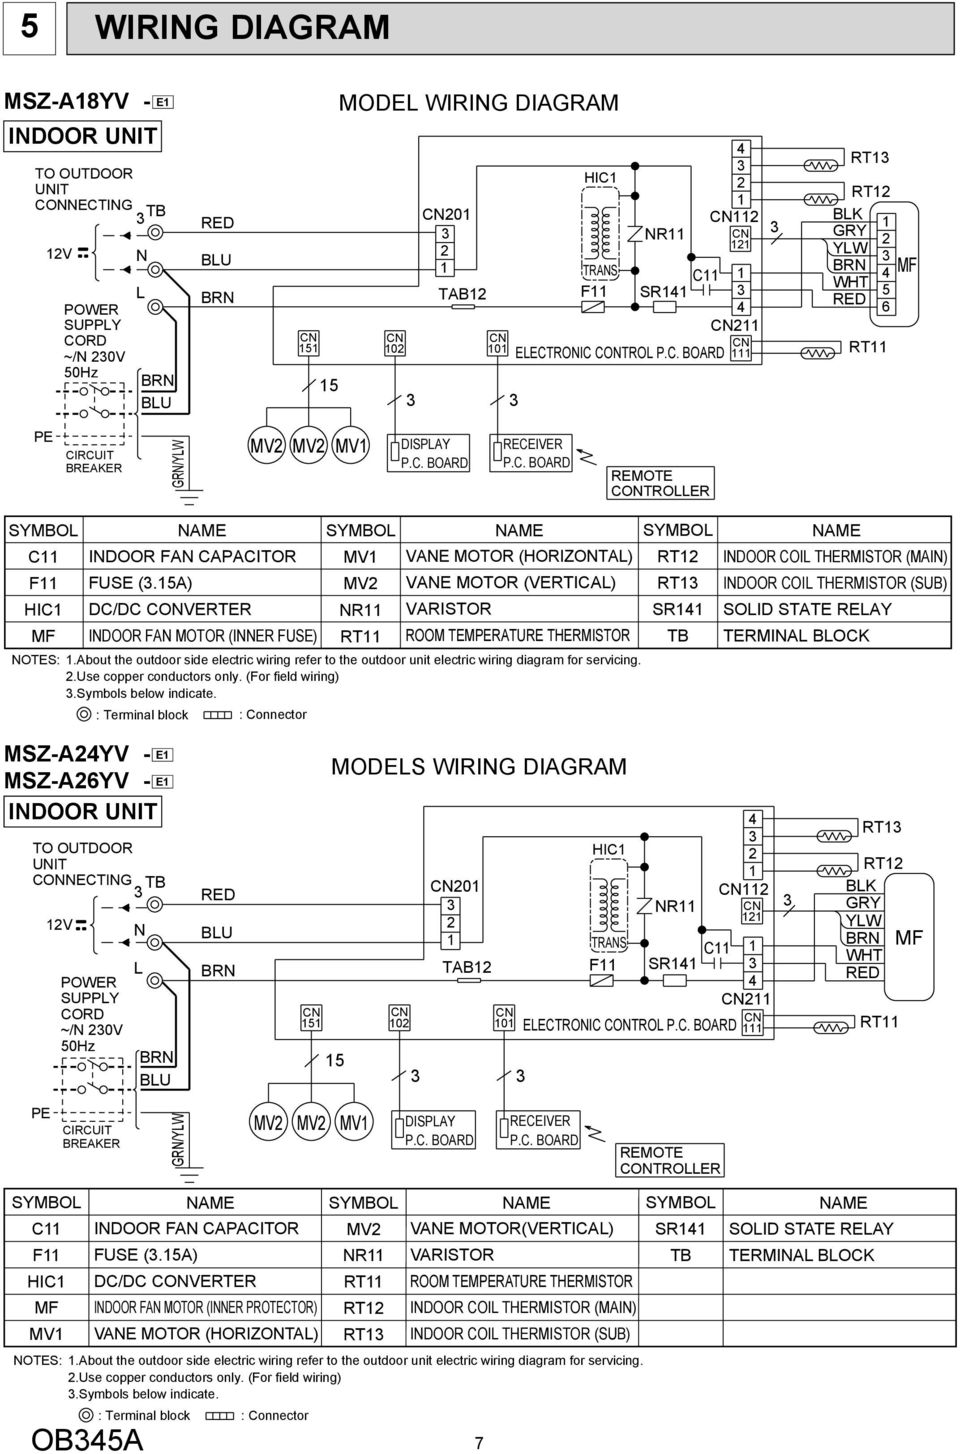 Service Manual Msz A18yv E1 A24yv Indoor Unit Terminal Blocks Electrical Wiring Diagram About The Outdoor Side Electric Refer To For Servicing